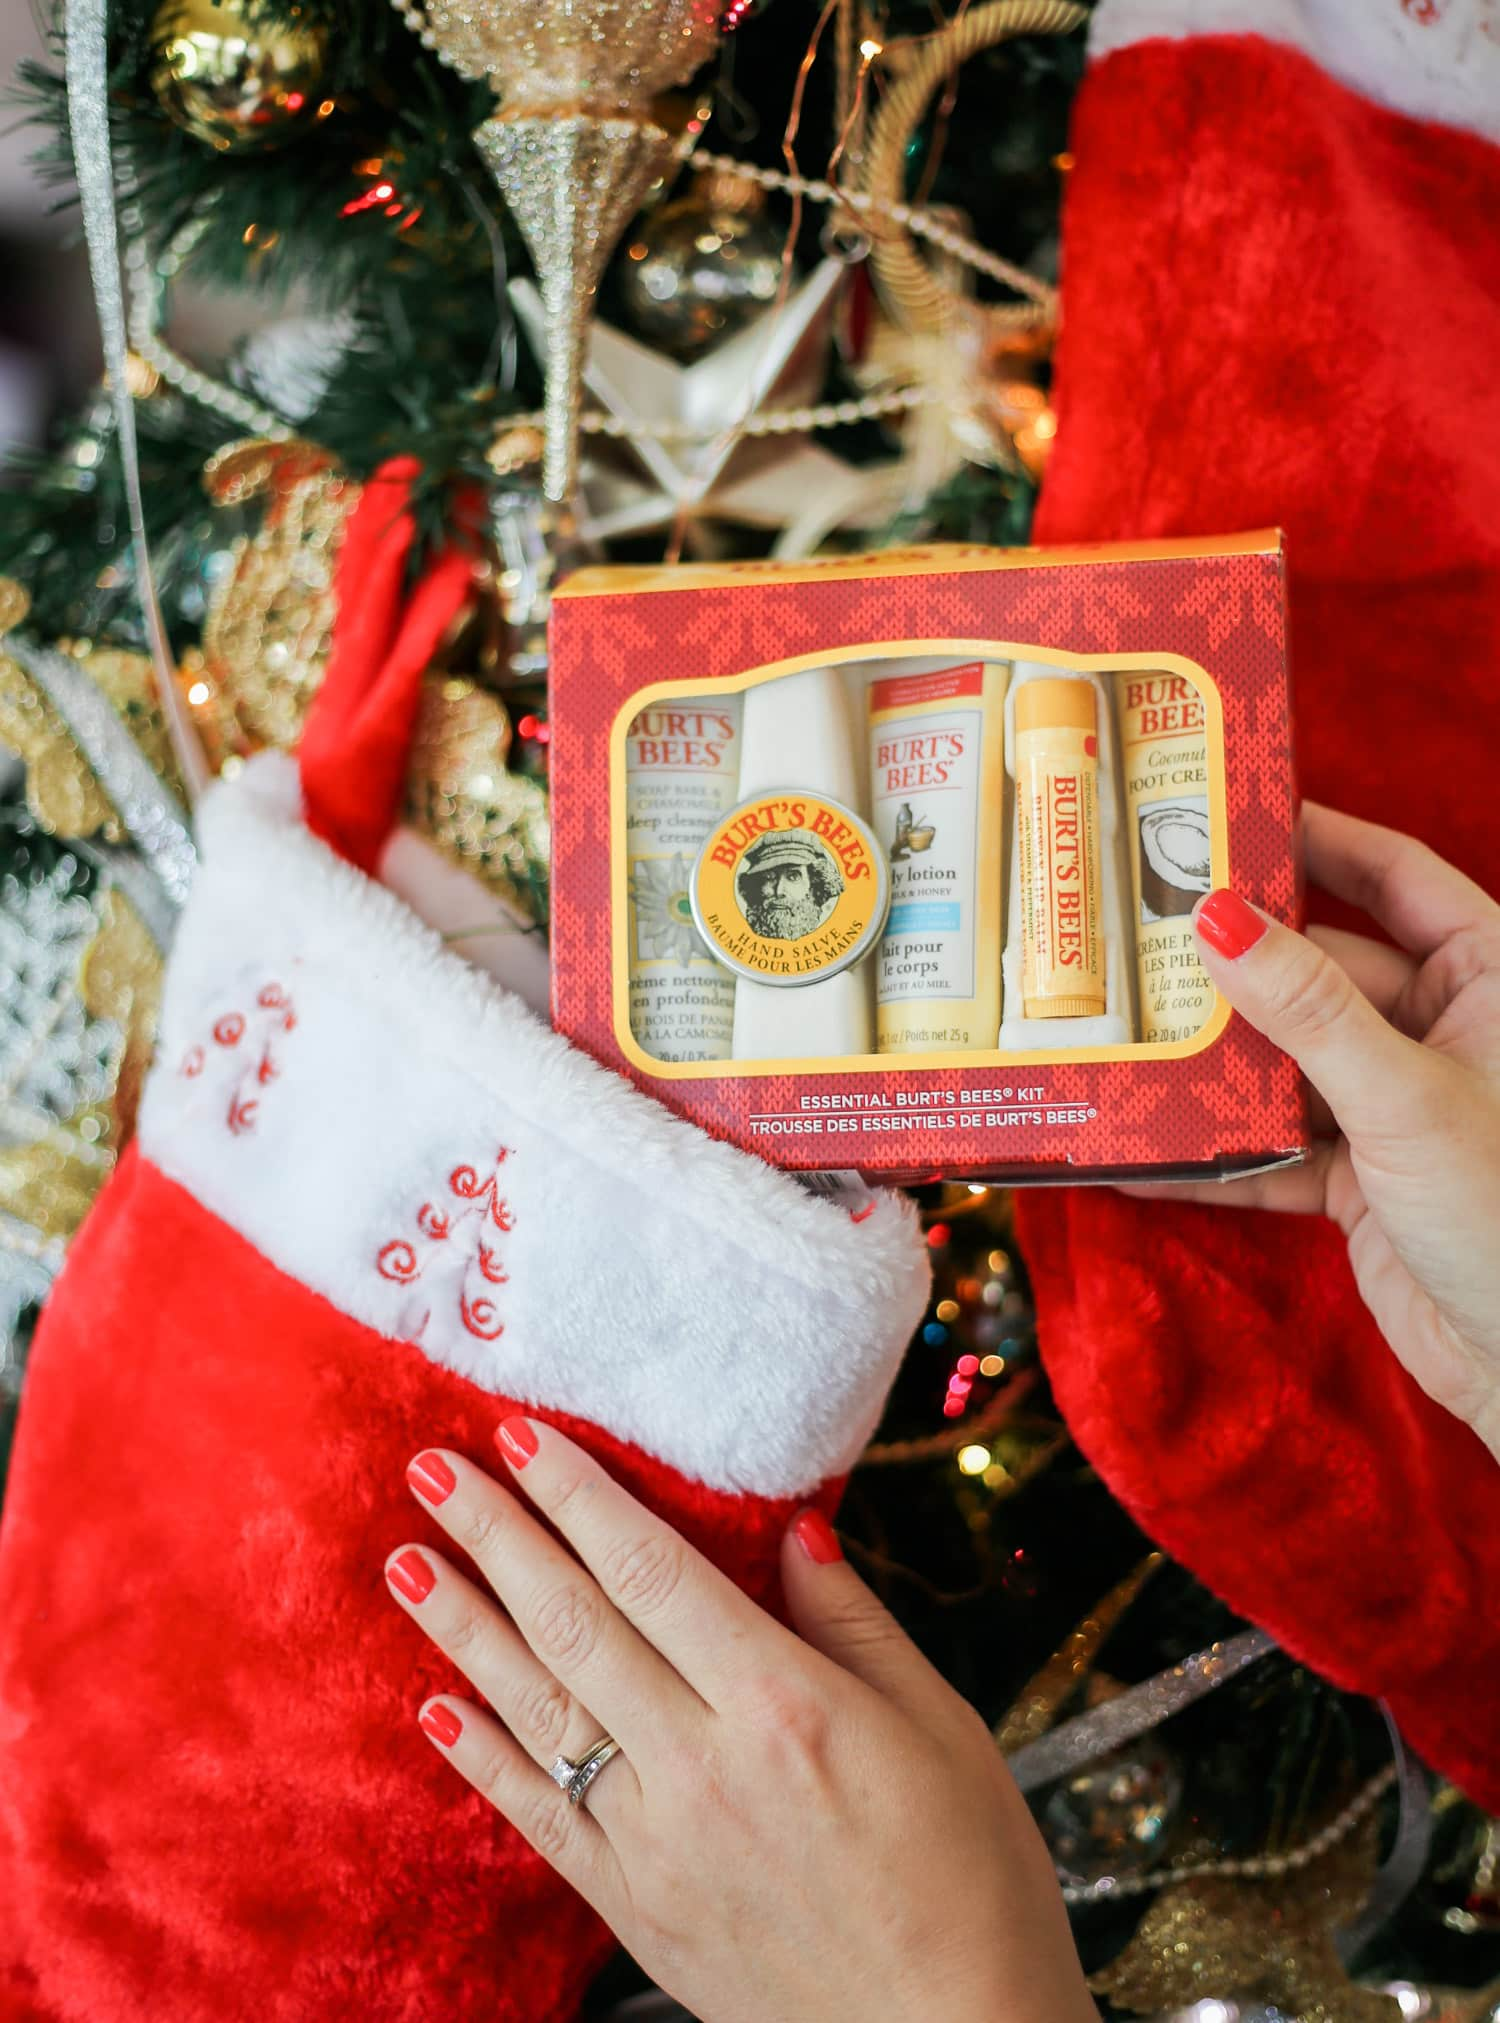 affordable-christmas-gift-ideas-under-10-burts-bees-essentials-kit-3182